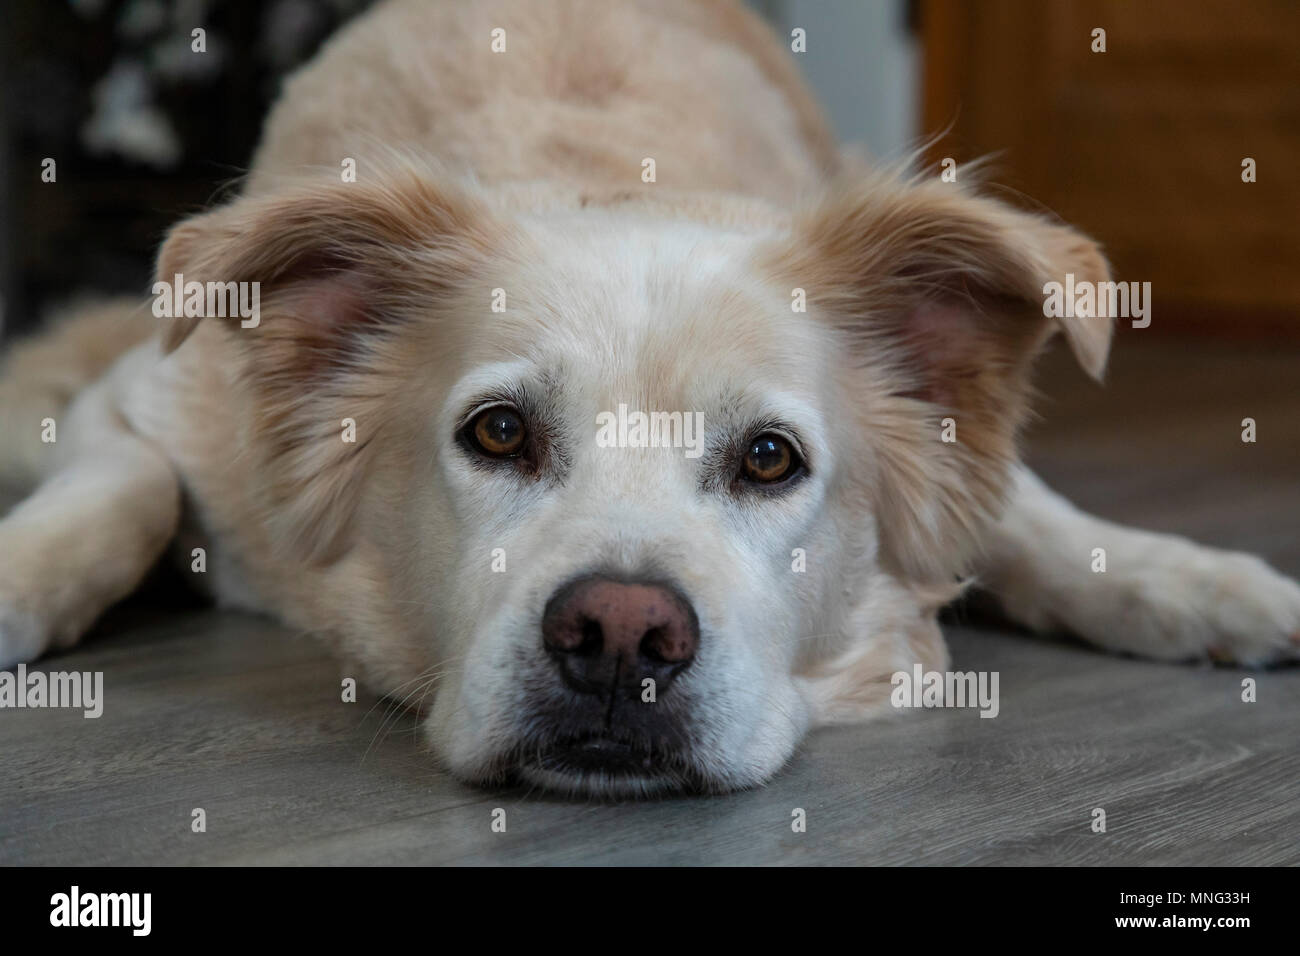 A resting dog, rescued from the pound. He is part Golden Retriever, part Lab, and maybe part German Shepherd. - Stock Image